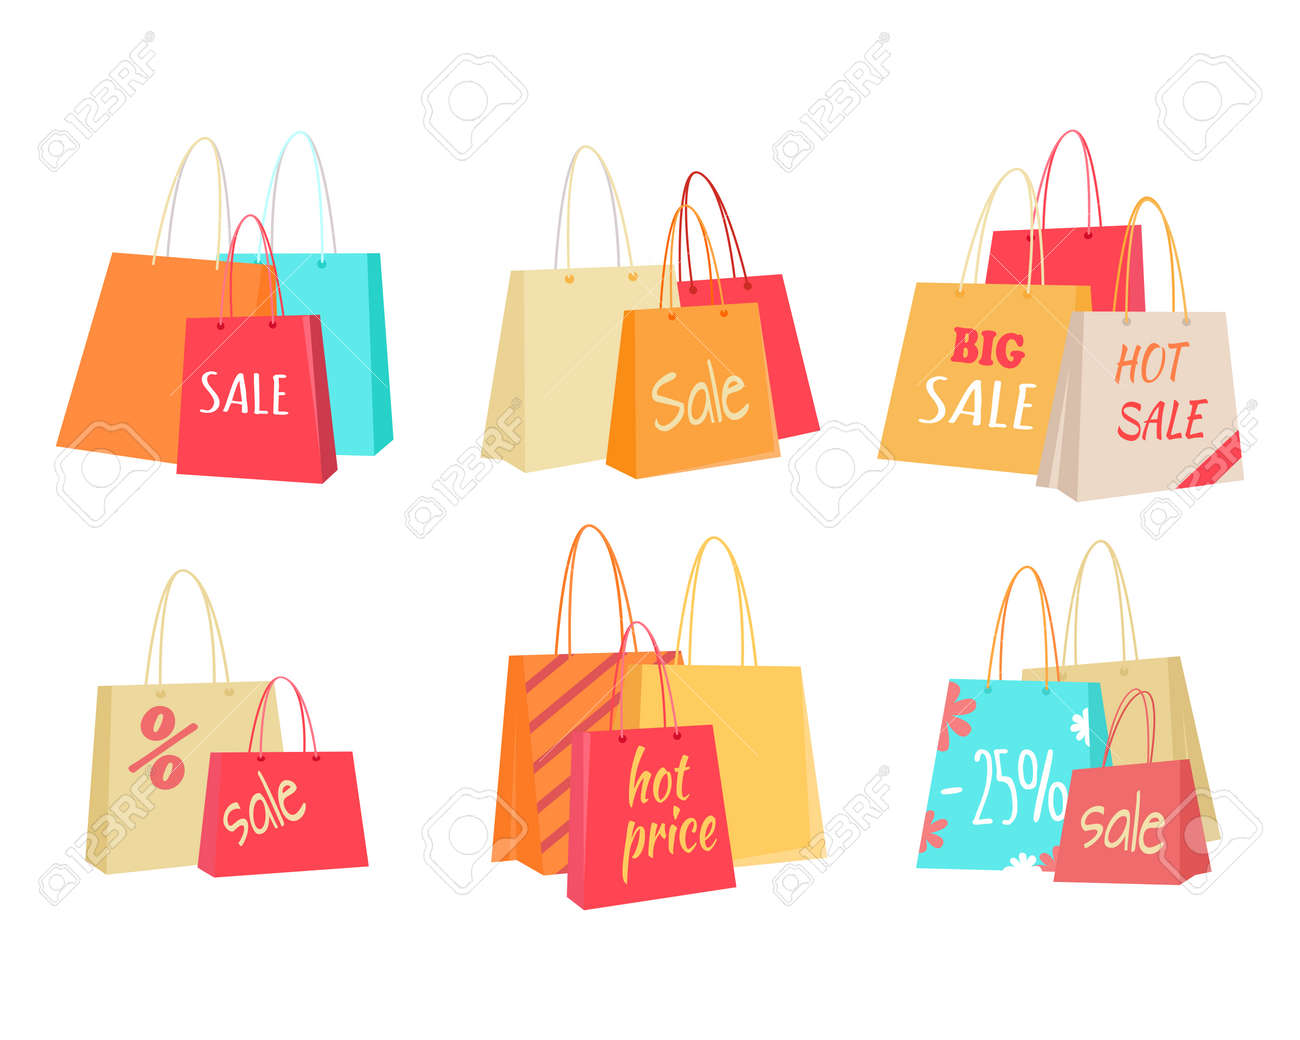 77bdc4cb6a Big sale in clothing store. Color shopping paper bags with sales  advertising text flat illustrations